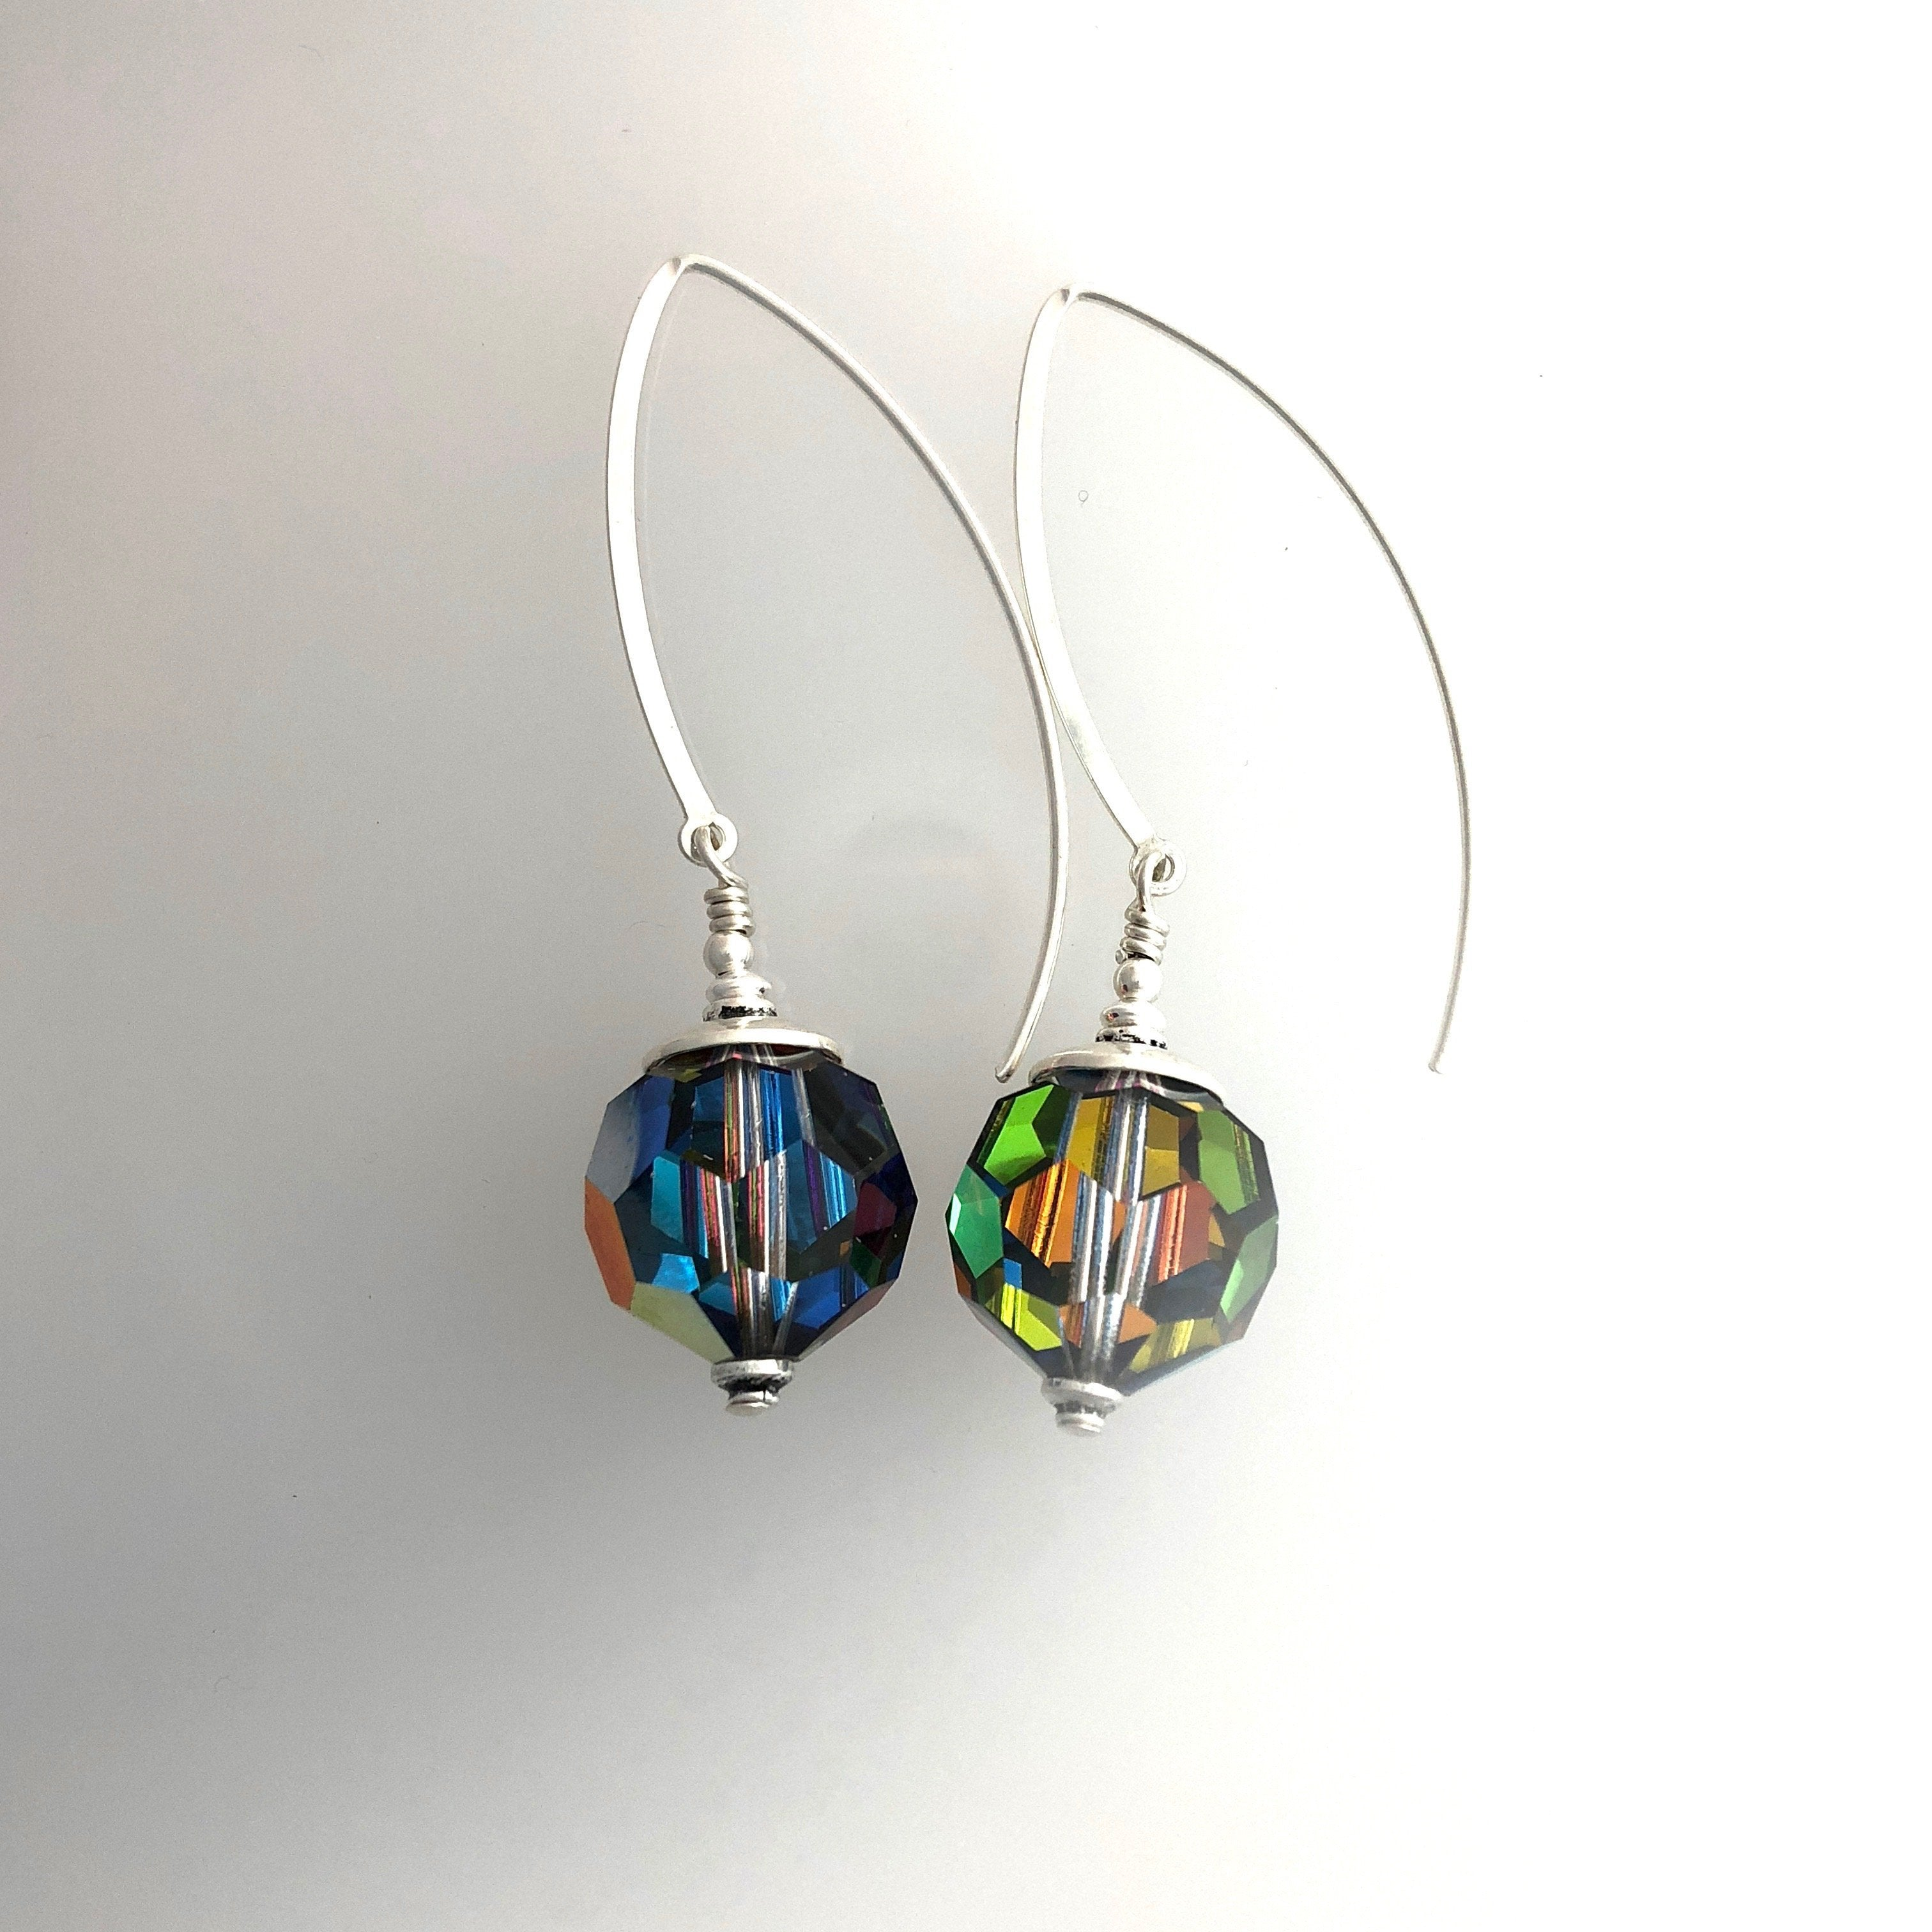 Rare Swarovski Vitrail and Sterling Silver Earrings